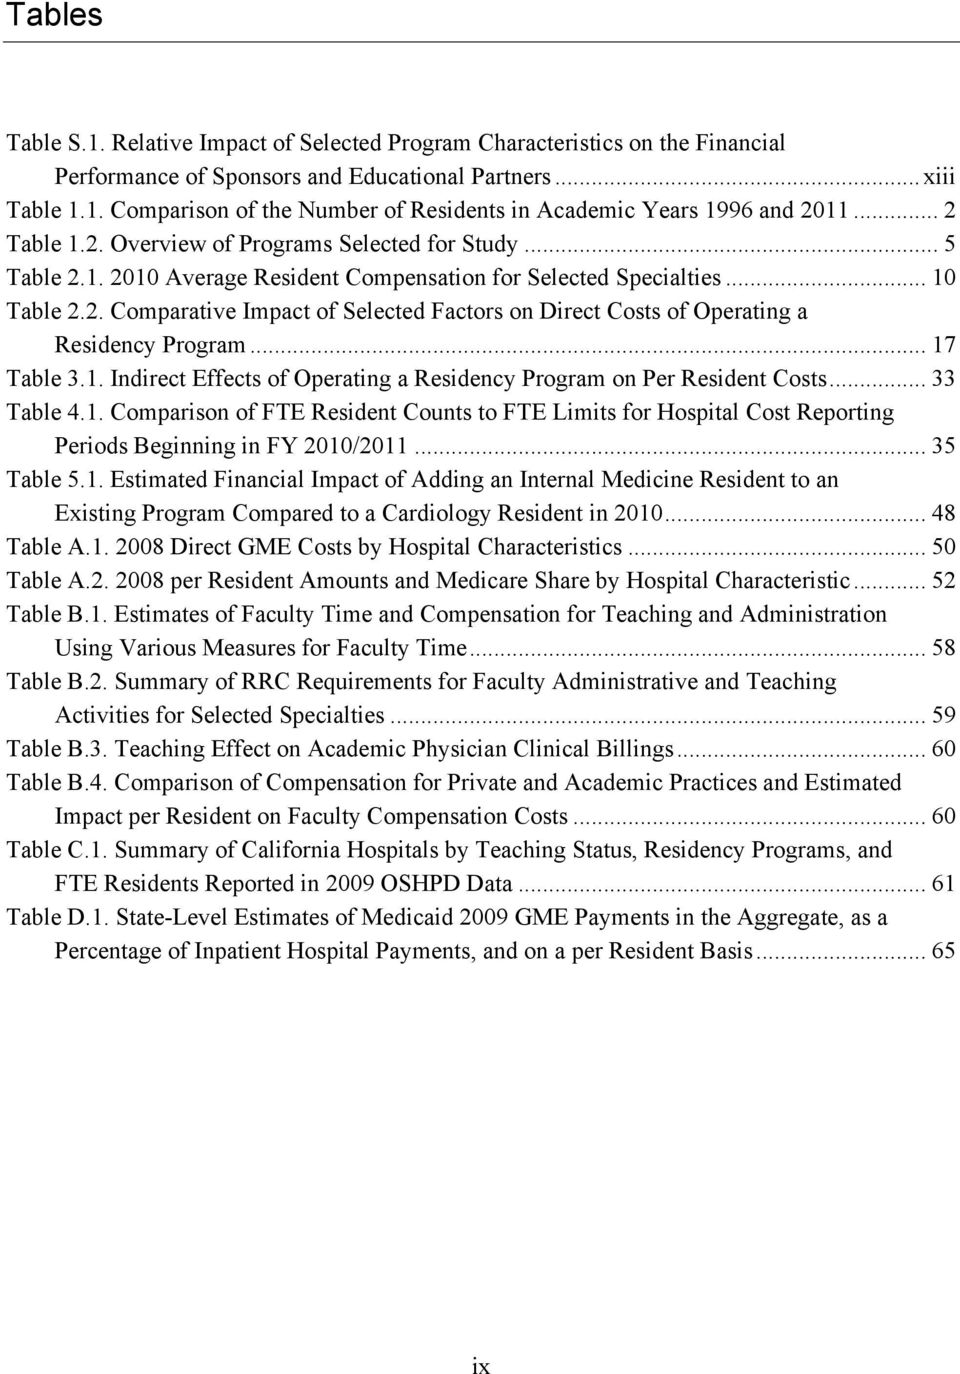 .. 17 Table 3.1. Indirect Effects of Operating a Residency Program on Per Resident Costs... 33 Table 4.1. Comparison of FTE Resident Counts to FTE Limits for Hospital Cost Reporting Periods Beginning in FY 2010/2011.